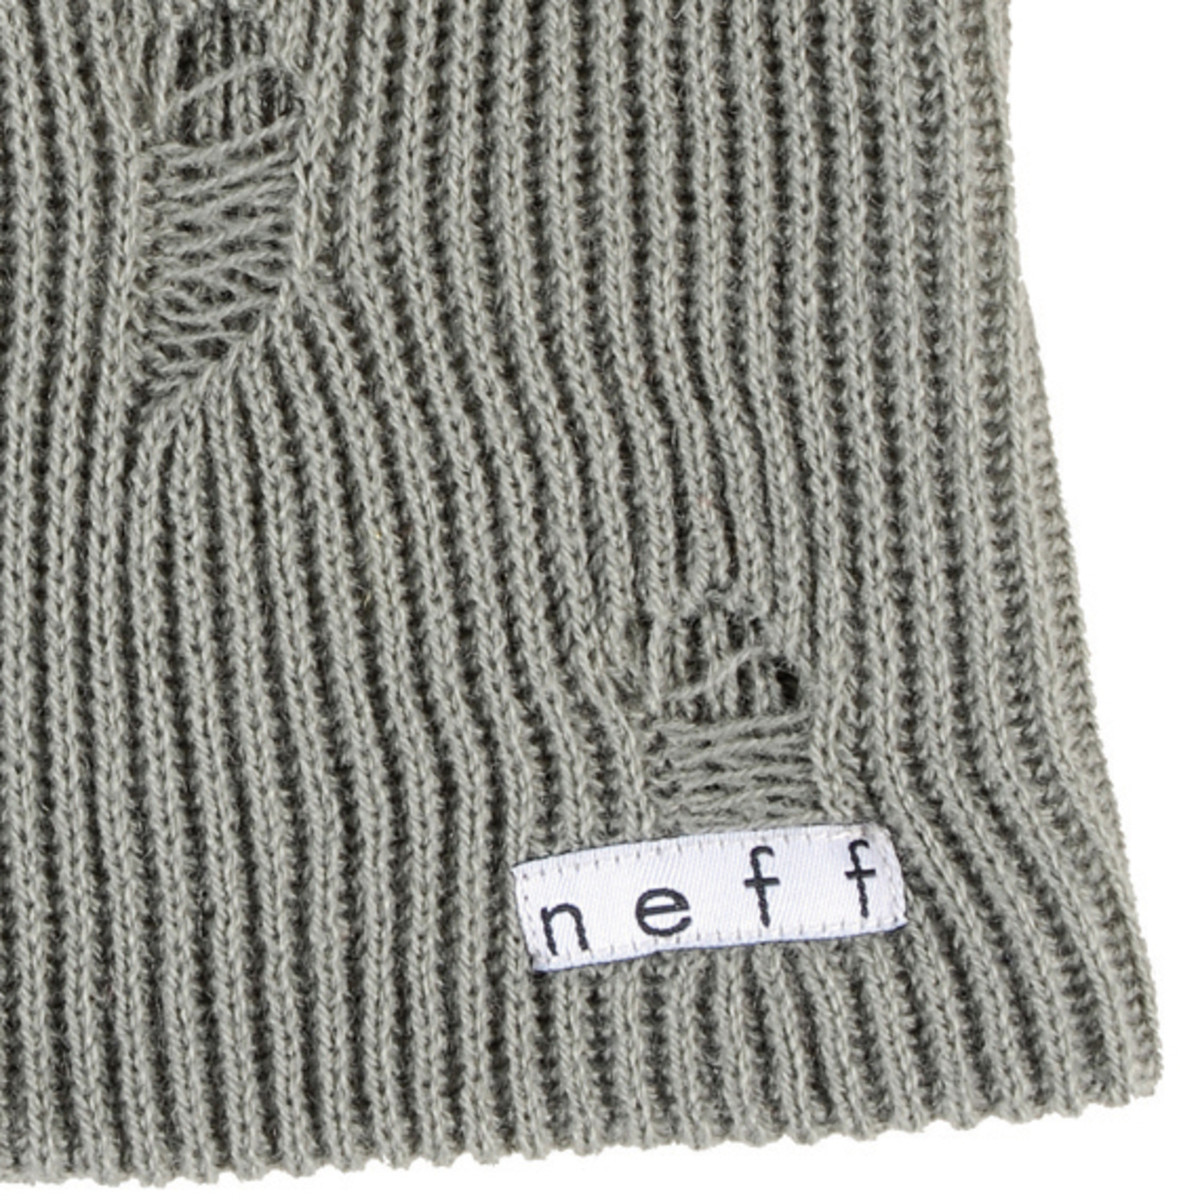 Neff x Steve Aoki - Neff DIM MAK Headwear Collection - Knit Beanie (Grey)